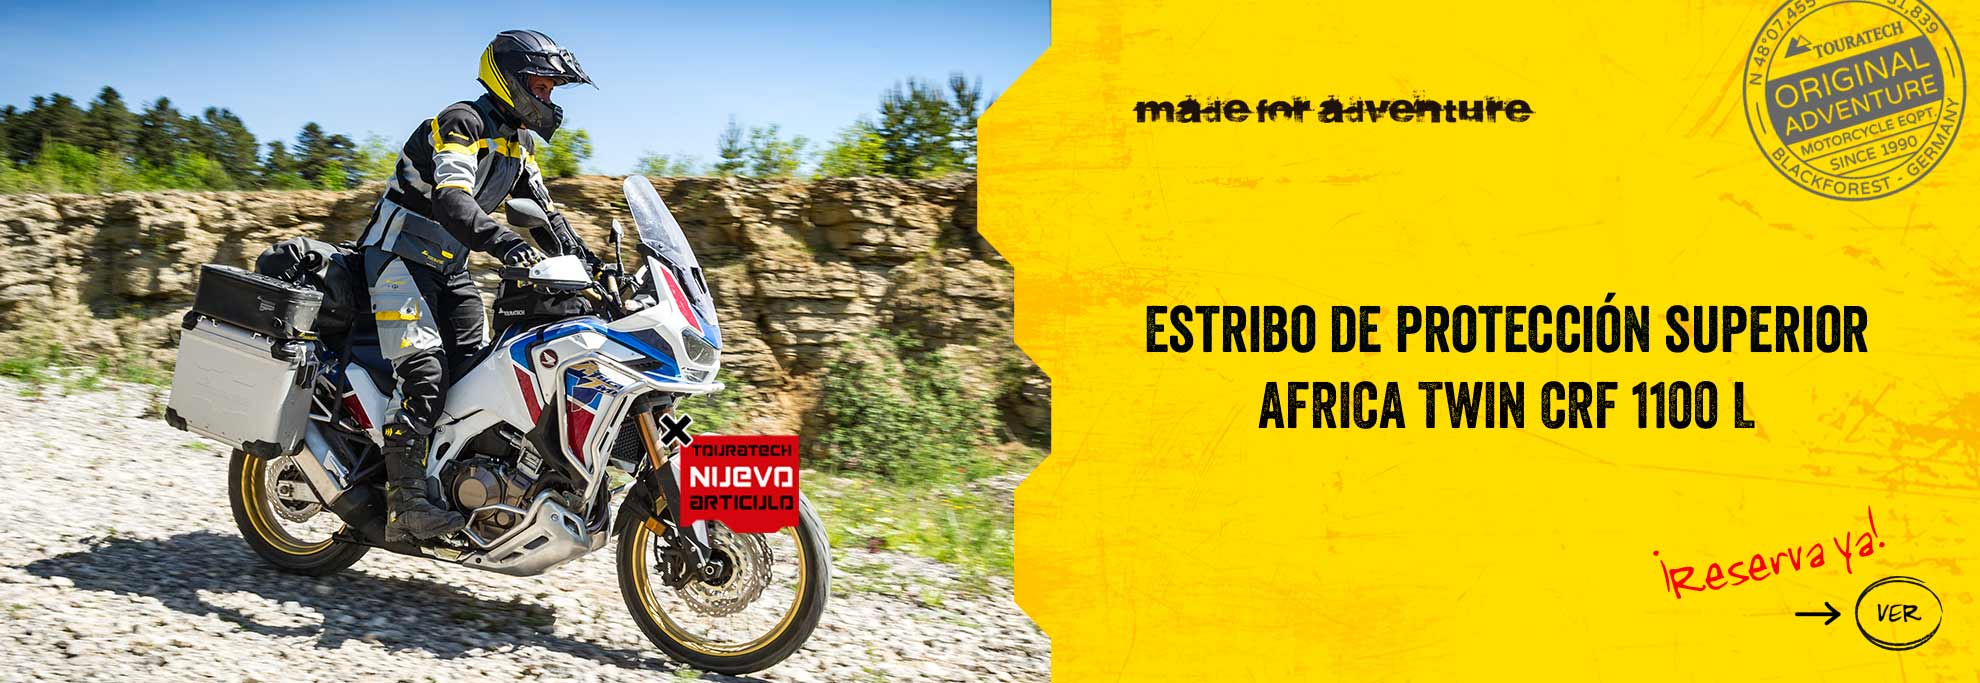 Defensa superior Africa Twin CRF 1100 L